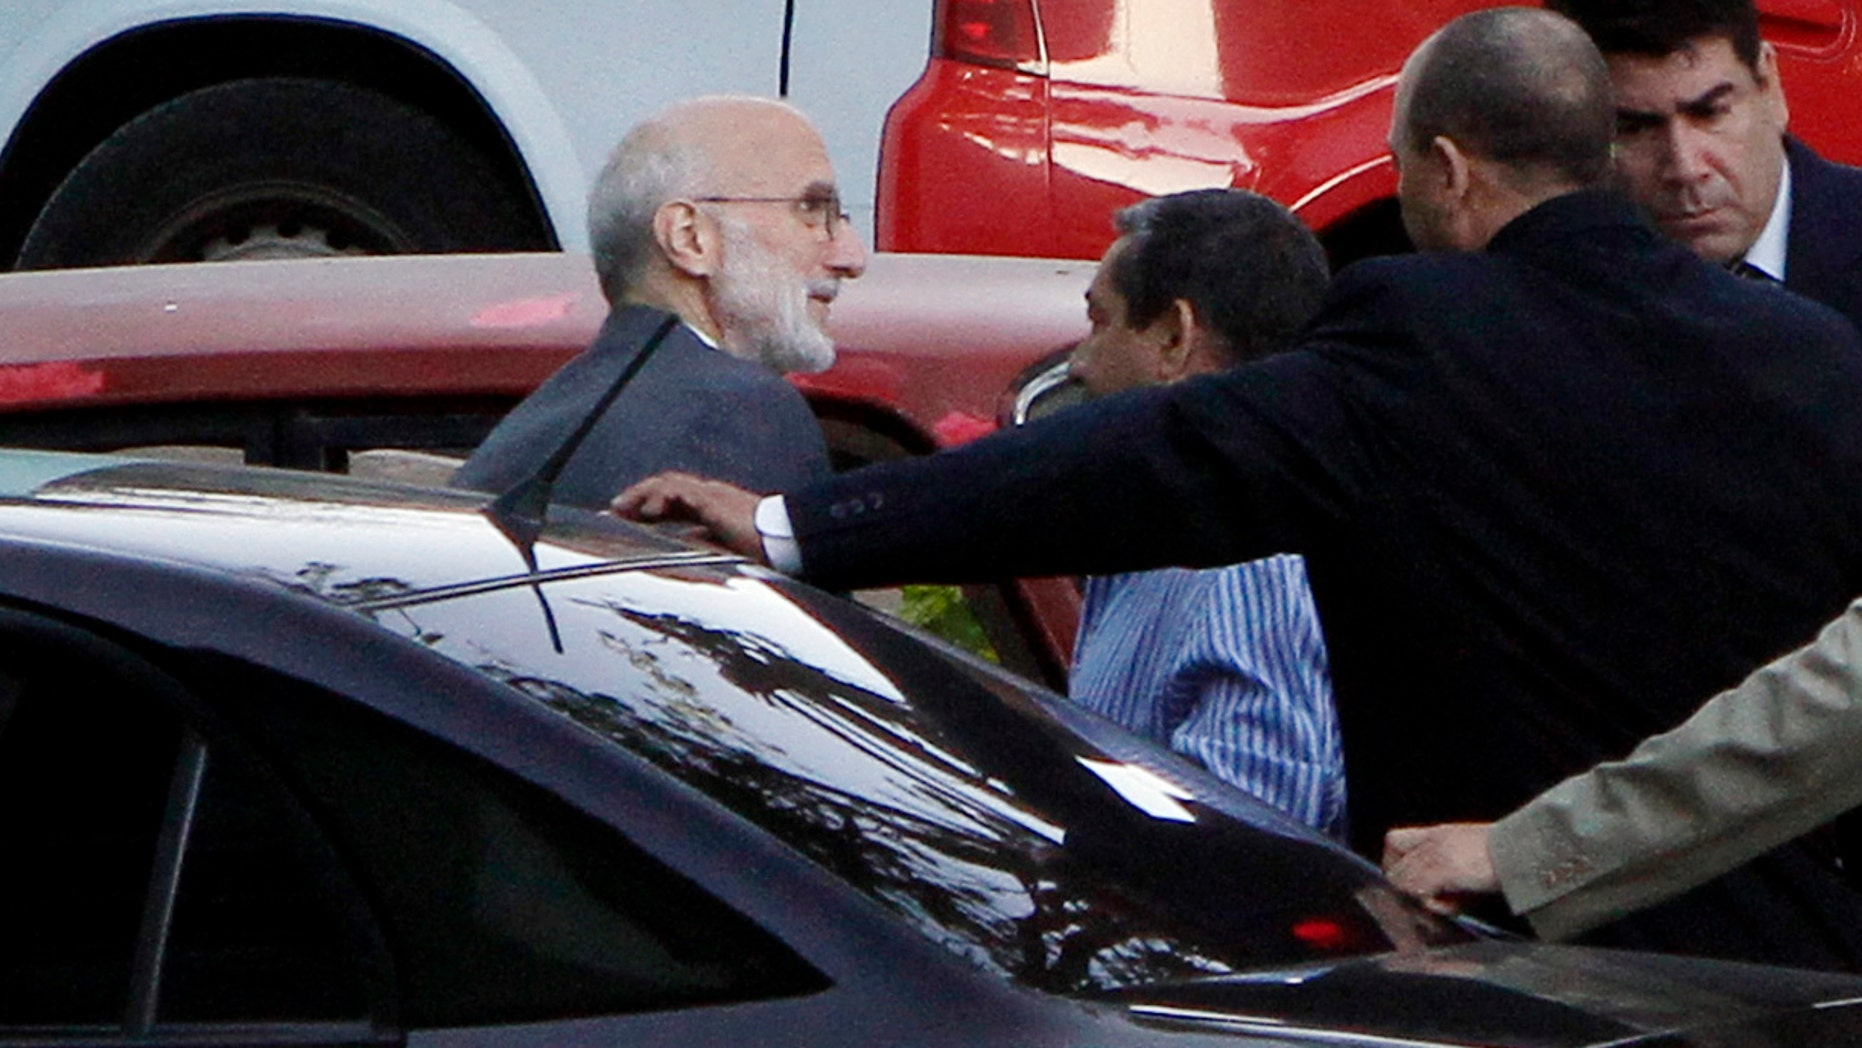 Alan Gross outside the courthouse in Havana, Cuba, in a March 5, 2011, file photo.